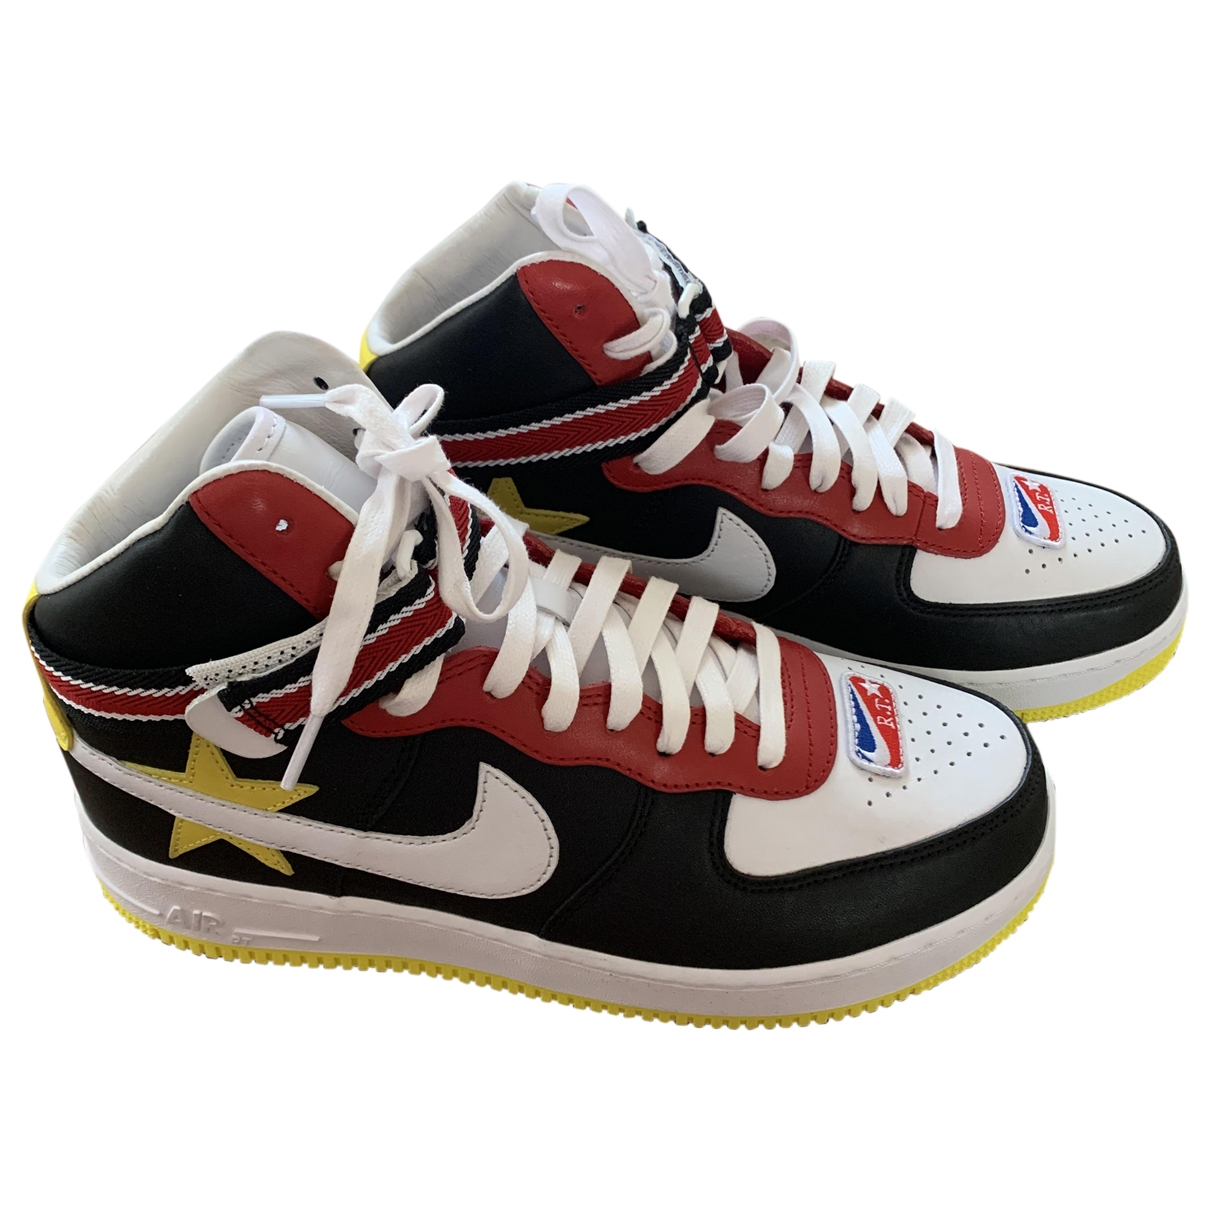 Nike By Riccardo Tisci - Baskets Air Force 1 pour homme en cuir